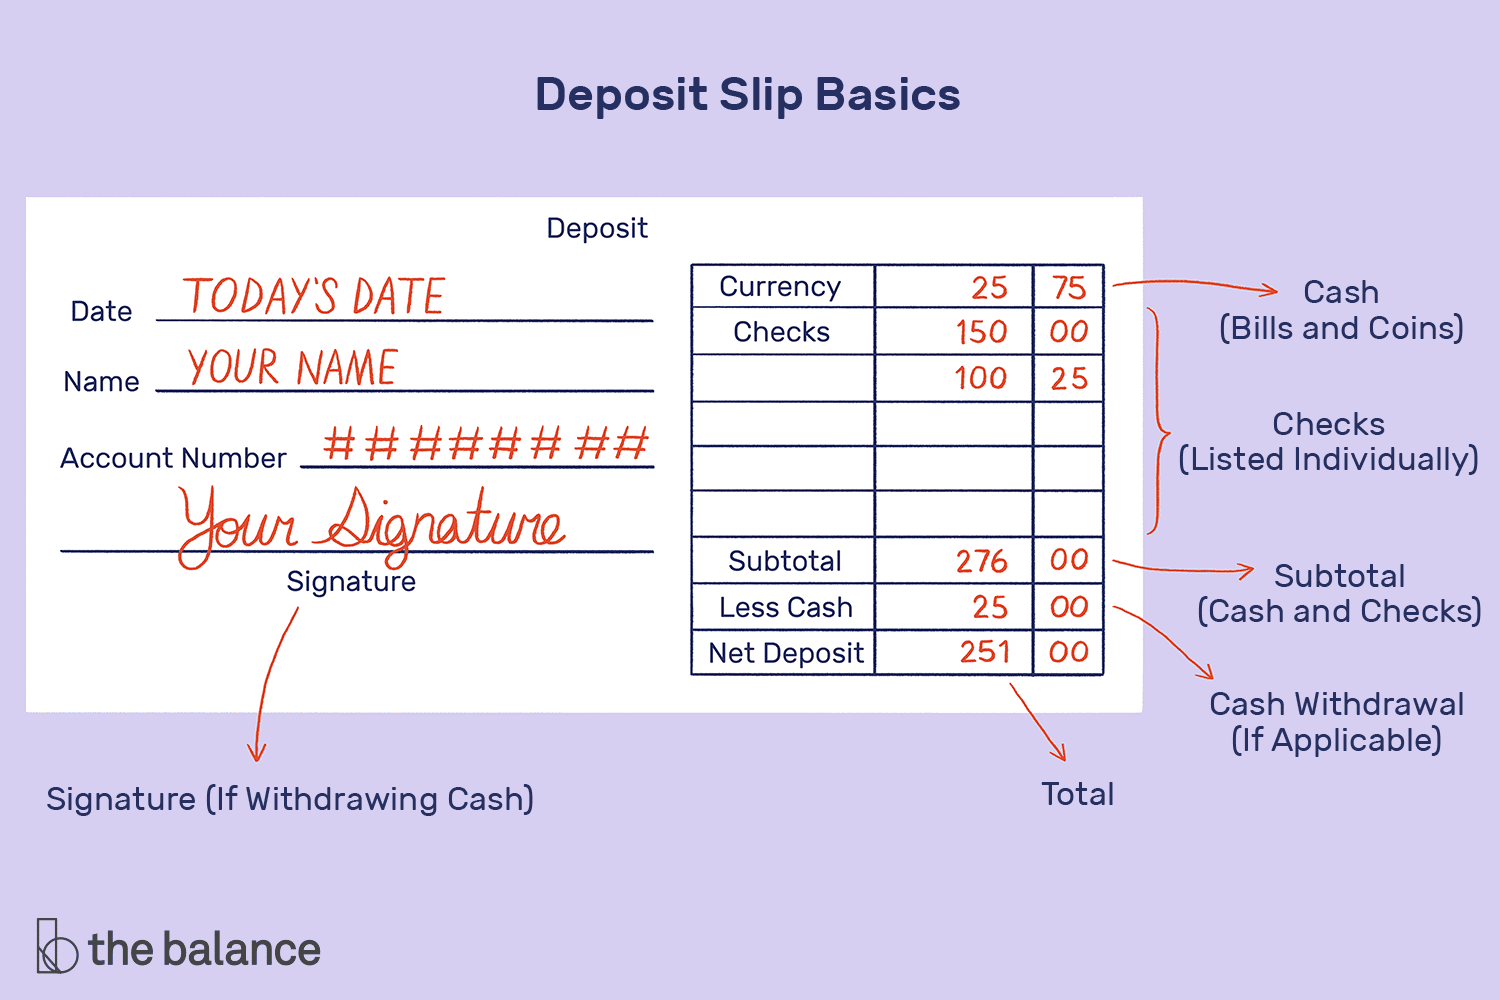 How to Fill Out a Deposit Slip